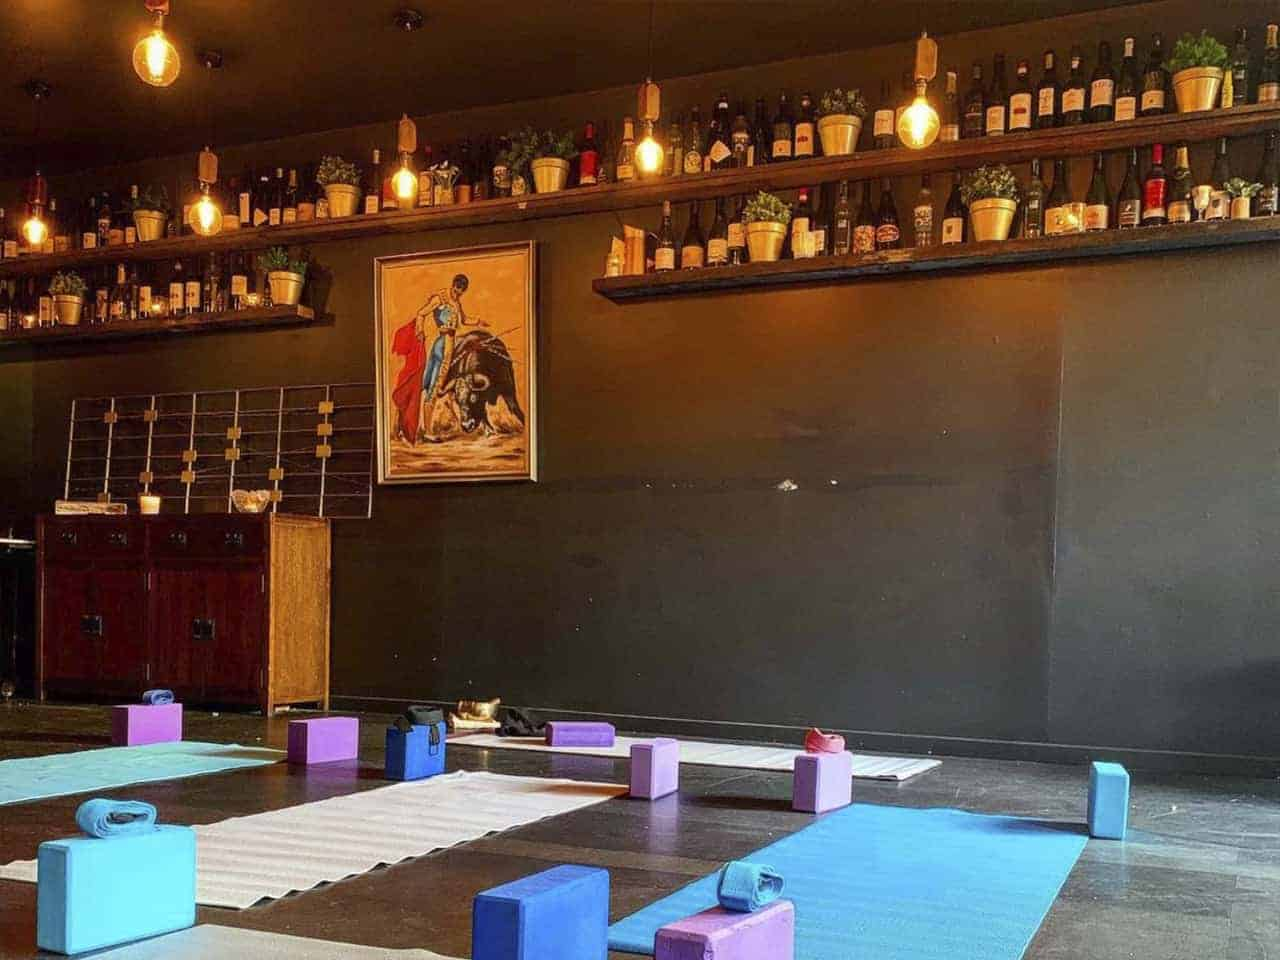 Private class and workshop space